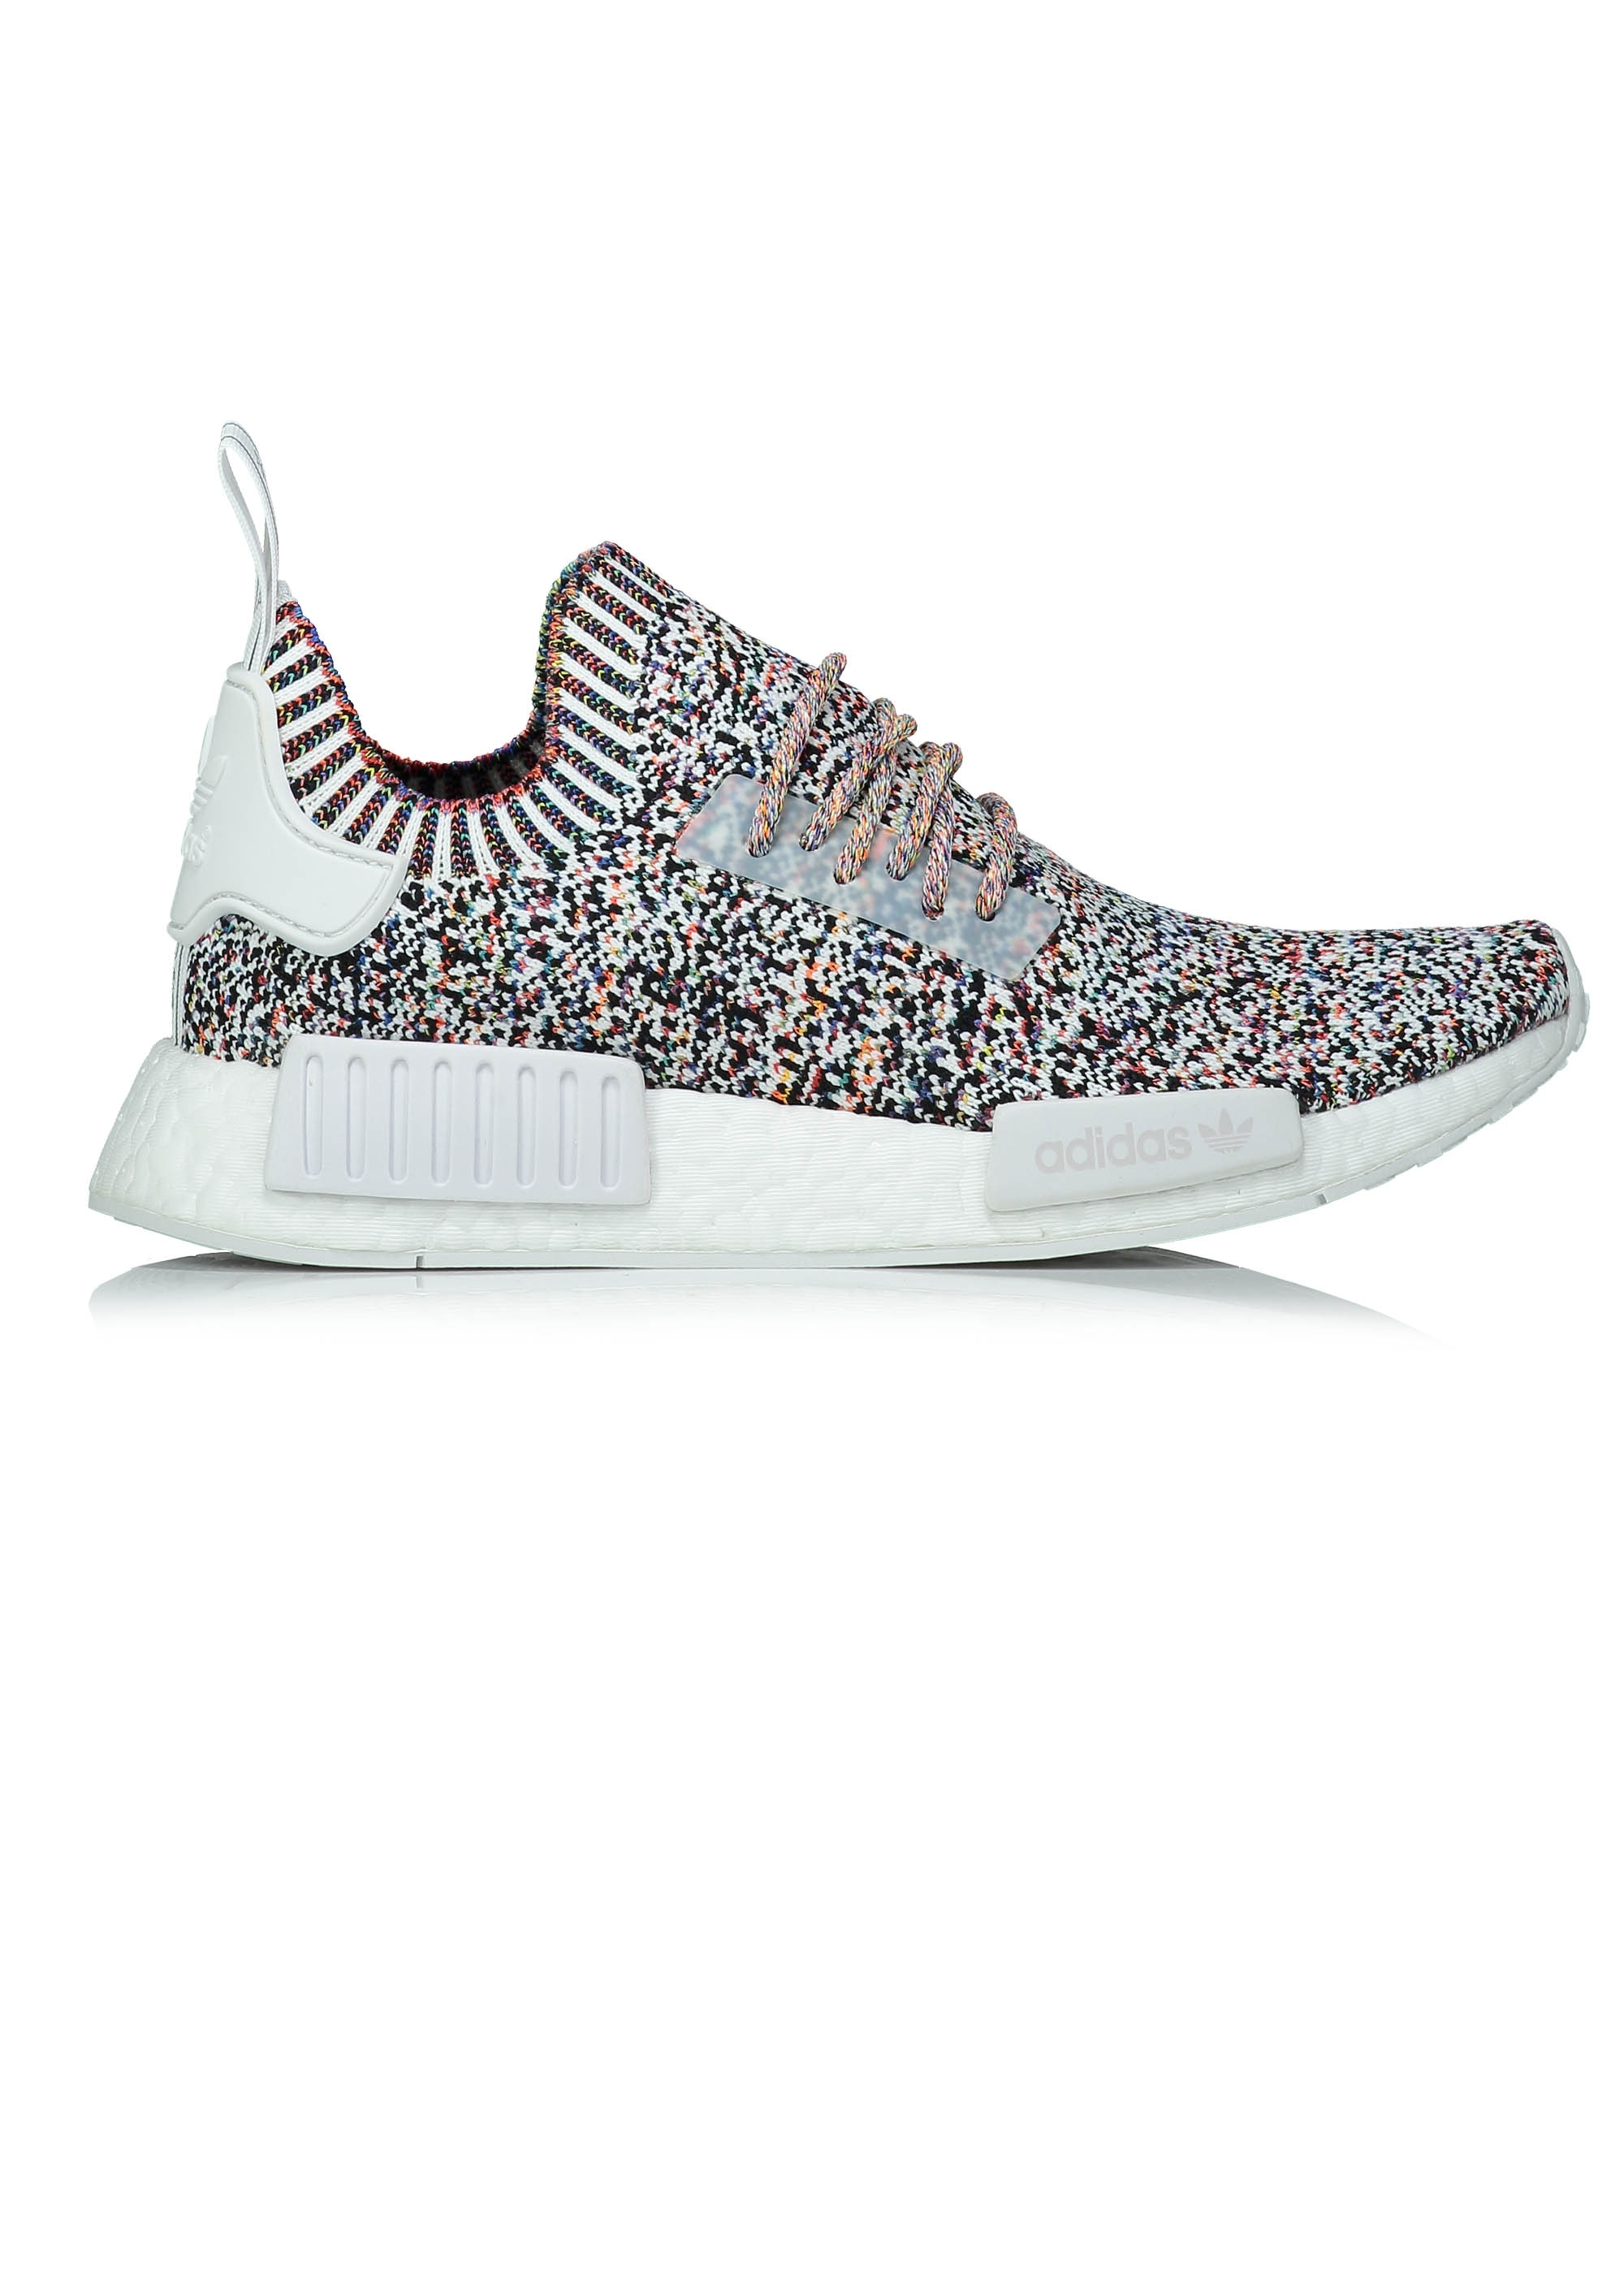 adidas Originals Footwear NMD R1 PK Static Multi